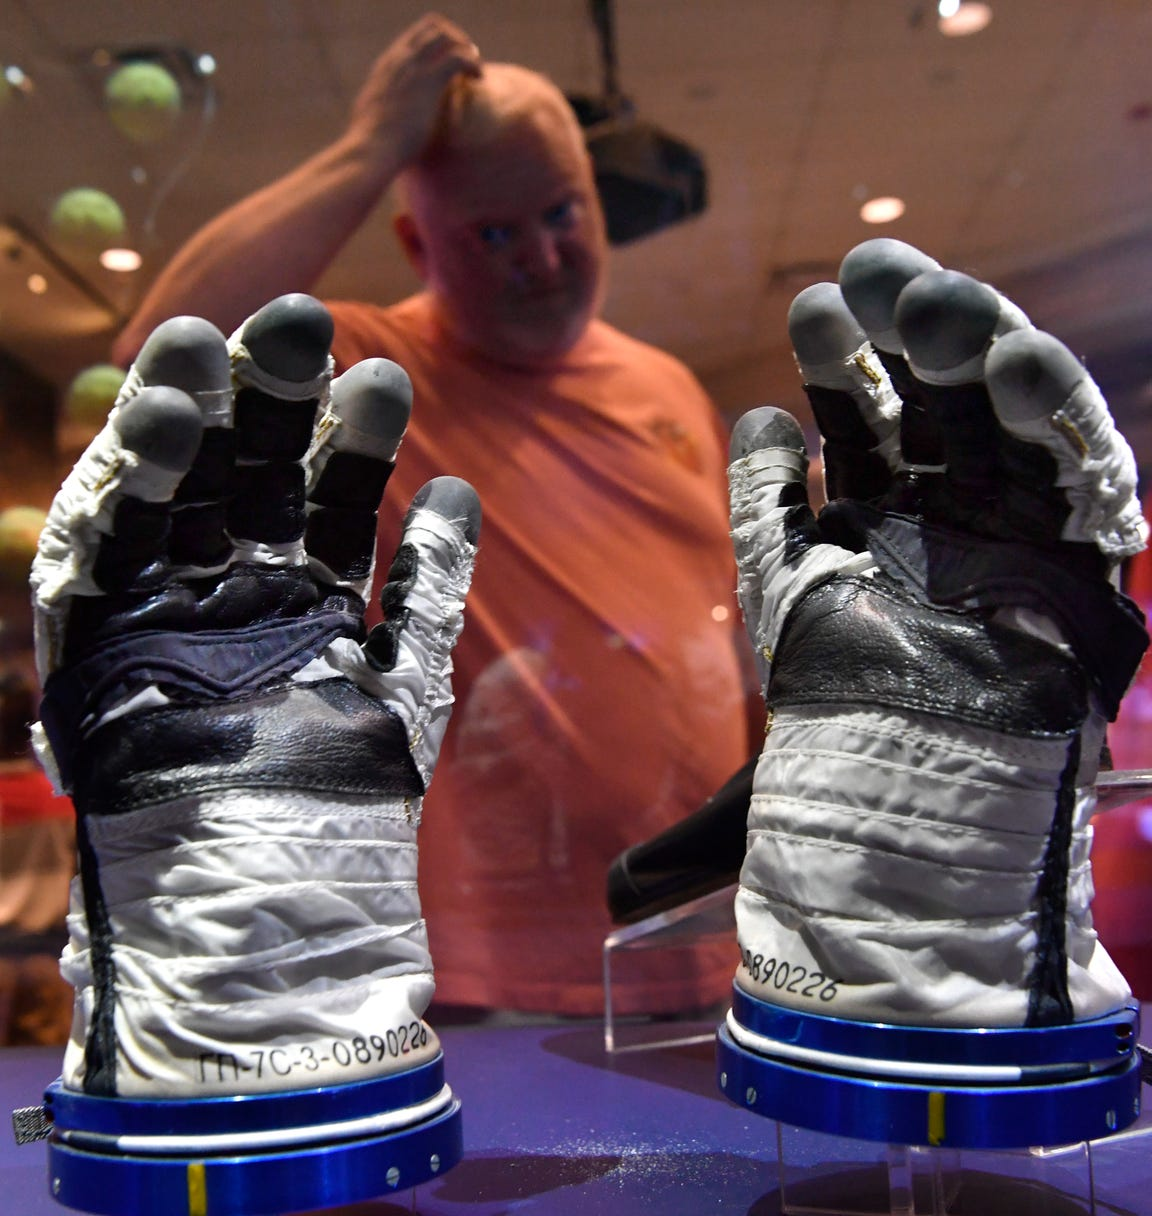 Jason Hammons looks at the Sokol spacesuit gloves worn by astronaut Scott Kelly at the start of his tour aboard the International Space Station. Hammons was visiting Space Center Houston from Lubbock with his family.